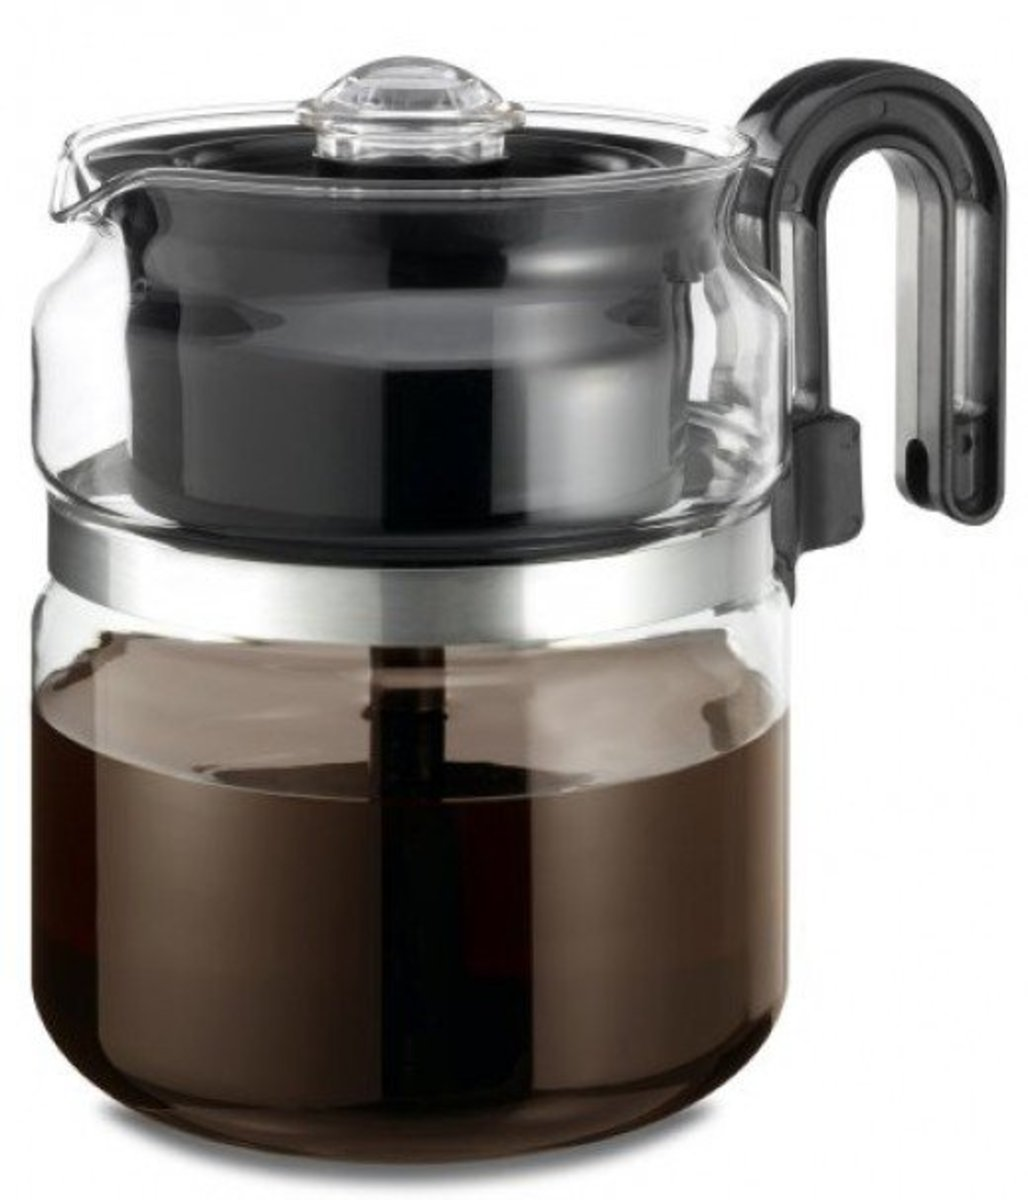 Best Stovetop Coffee Percolator 2017: Top 5